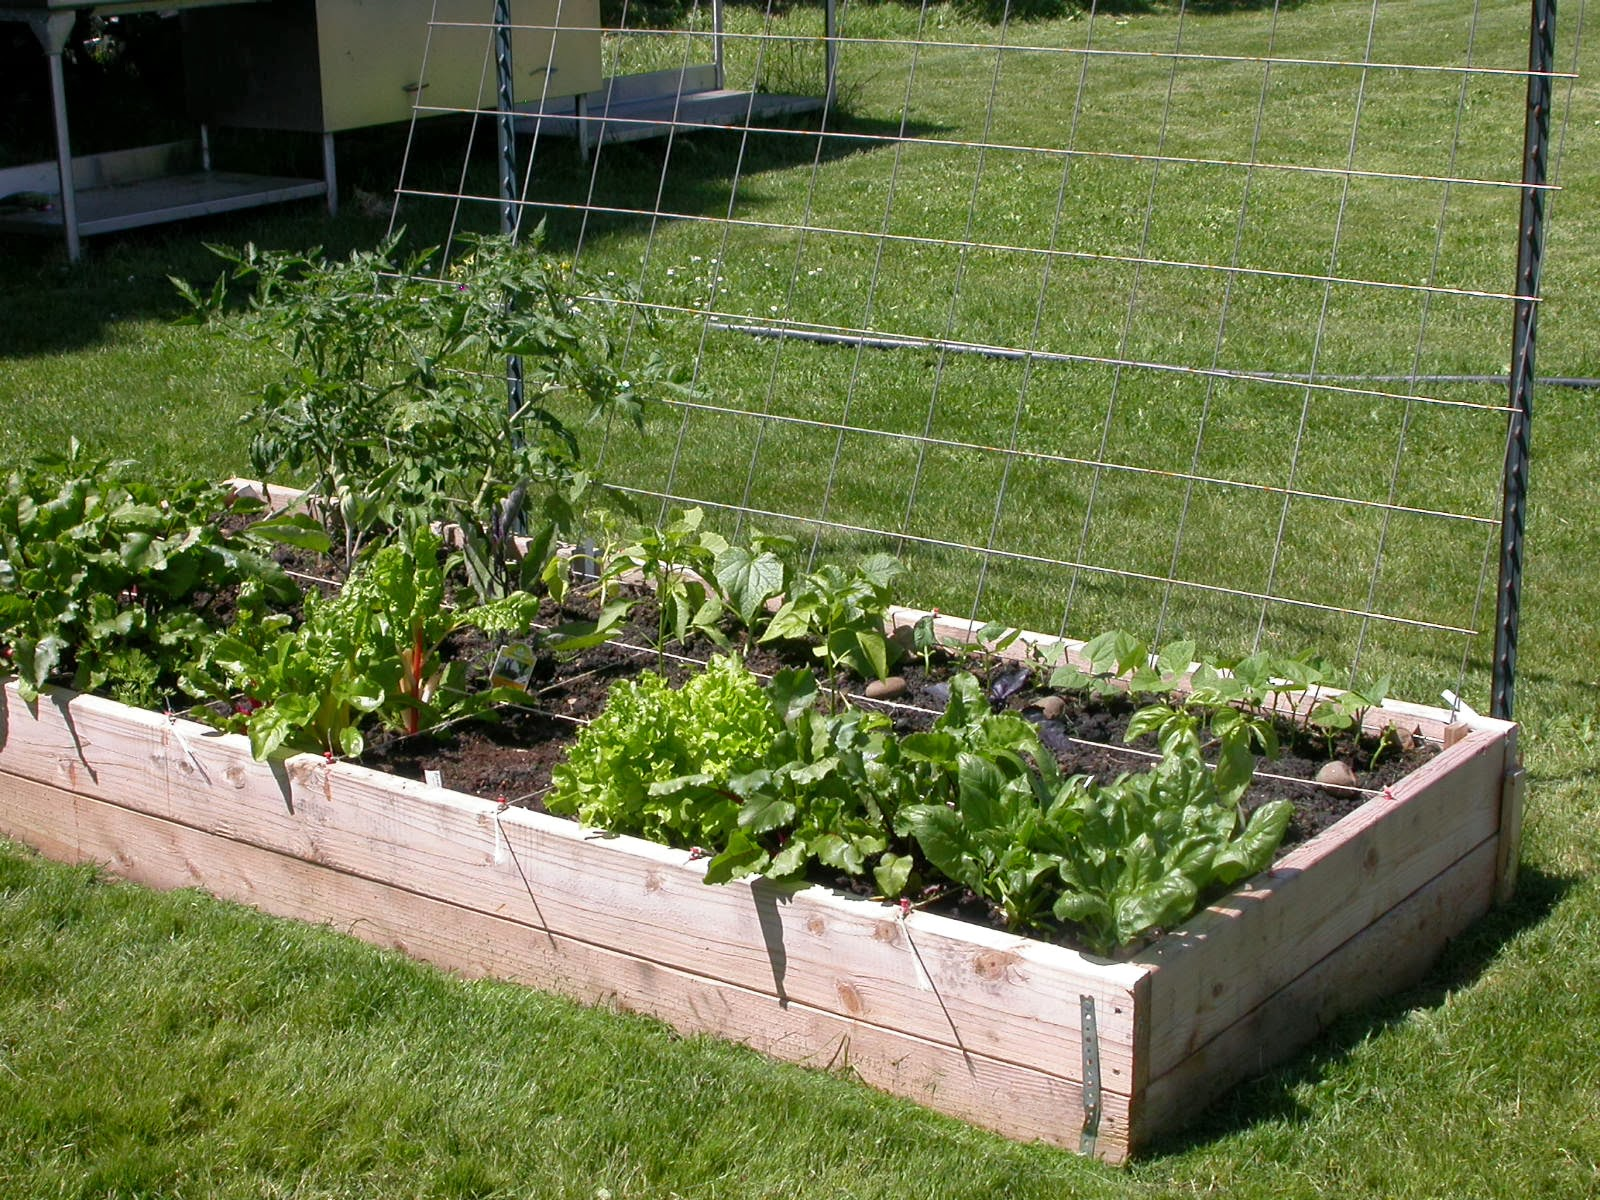 Superior During This Season Of Giving: Six Garden Focused Organizations To Consider